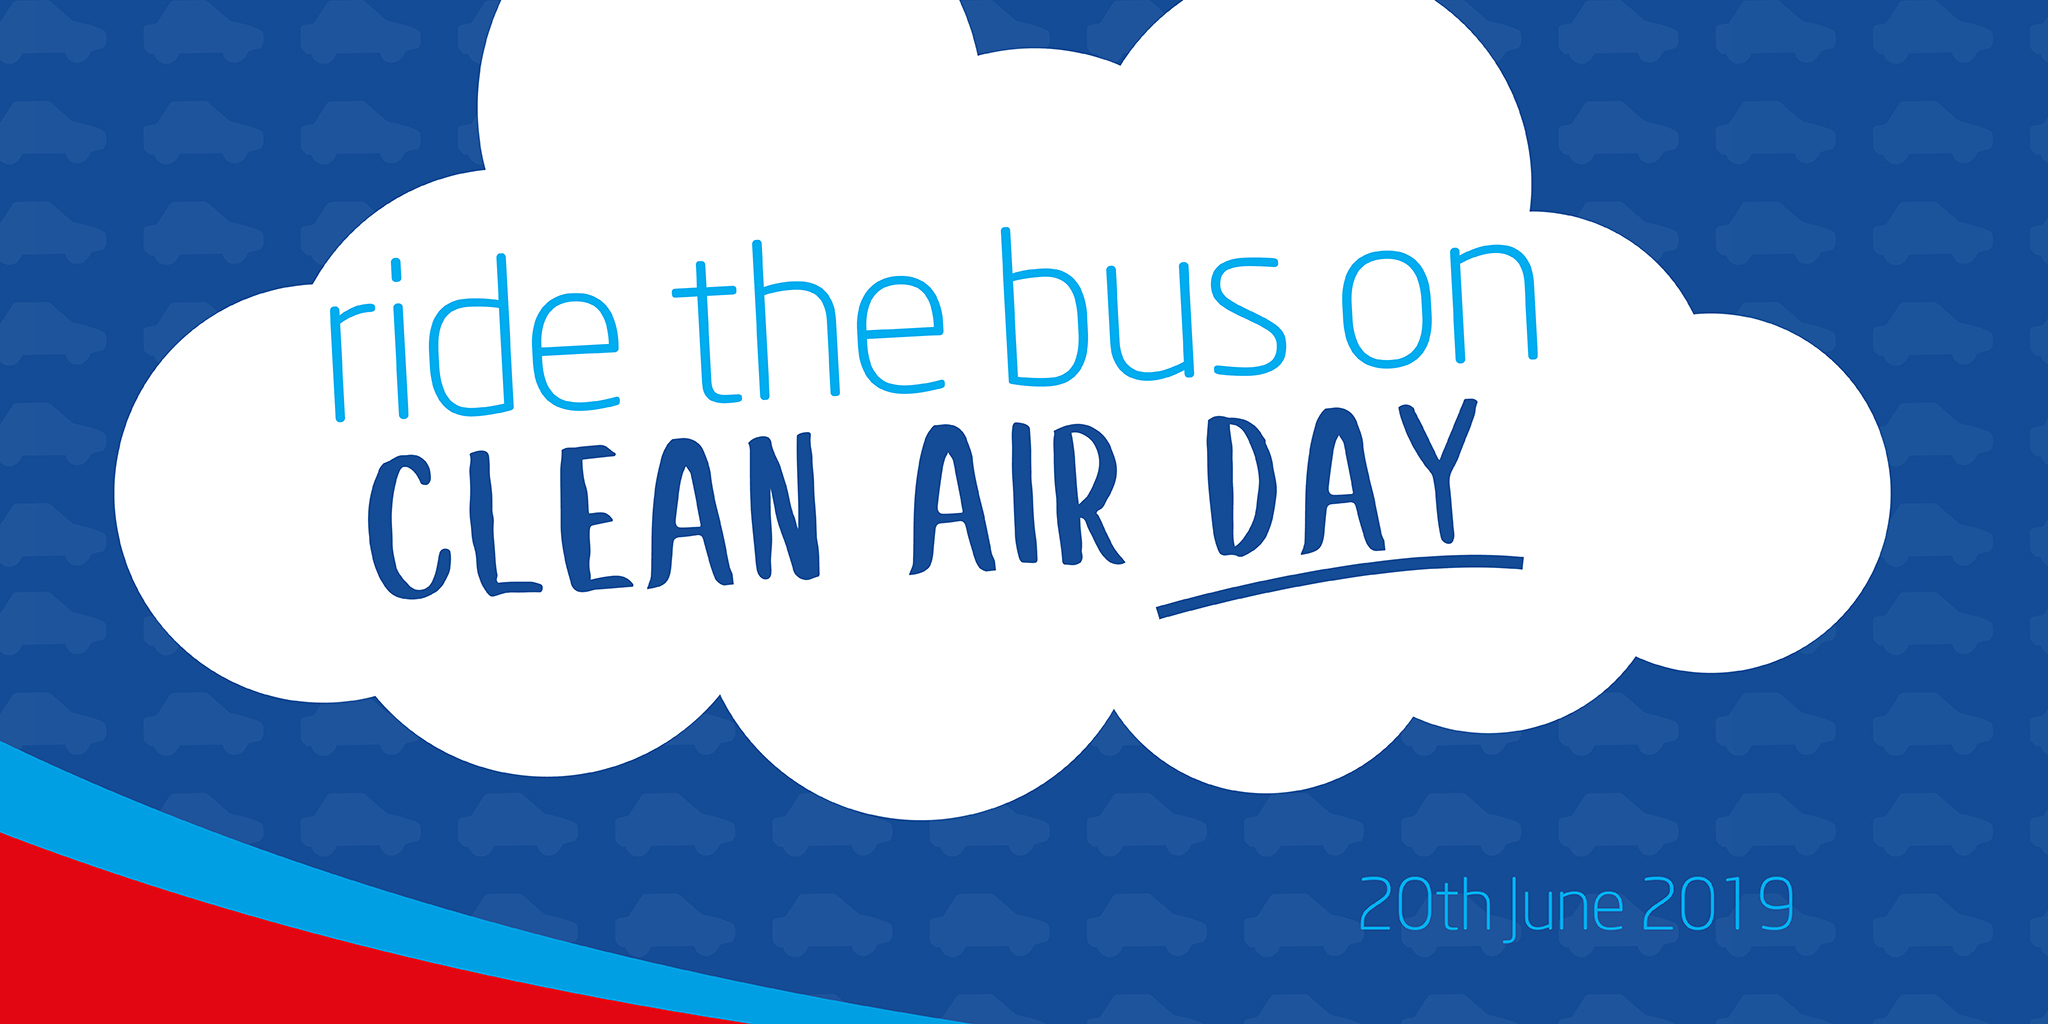 morebus Clean Air Day - travel for just £1